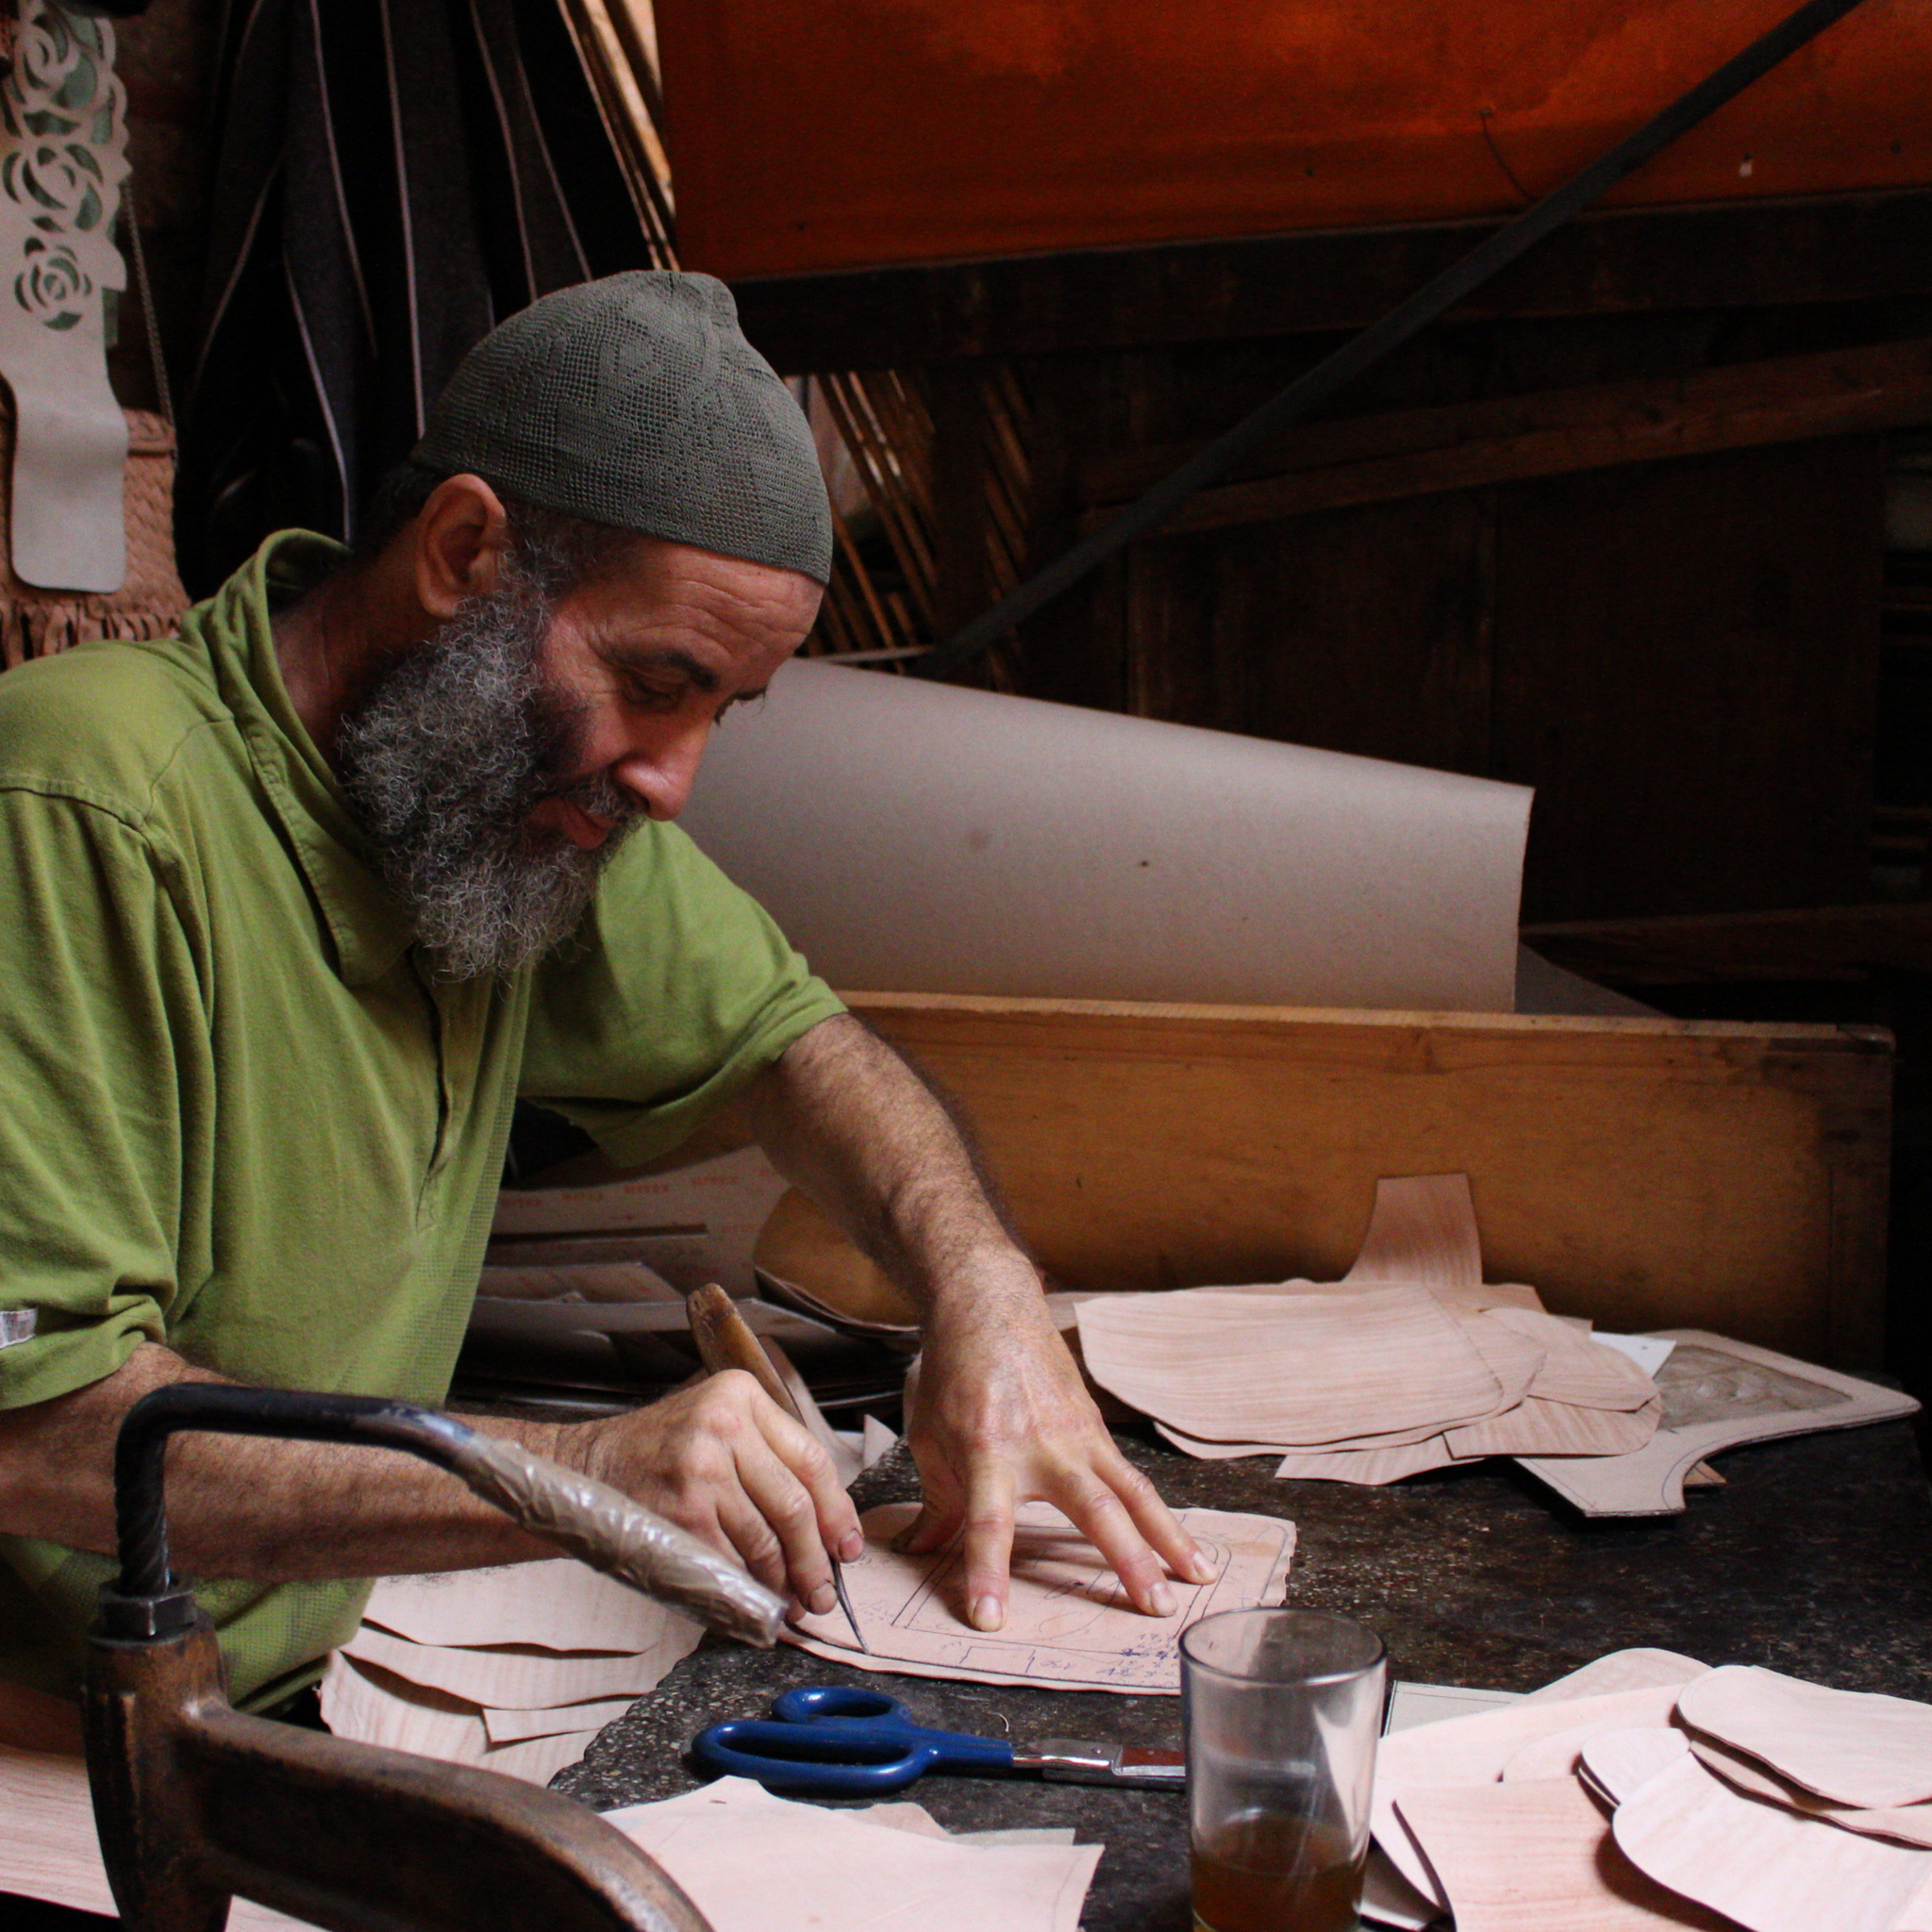 Ethically Handmade Moroccan Leather Bags & Accessories ~ Meet the Makers